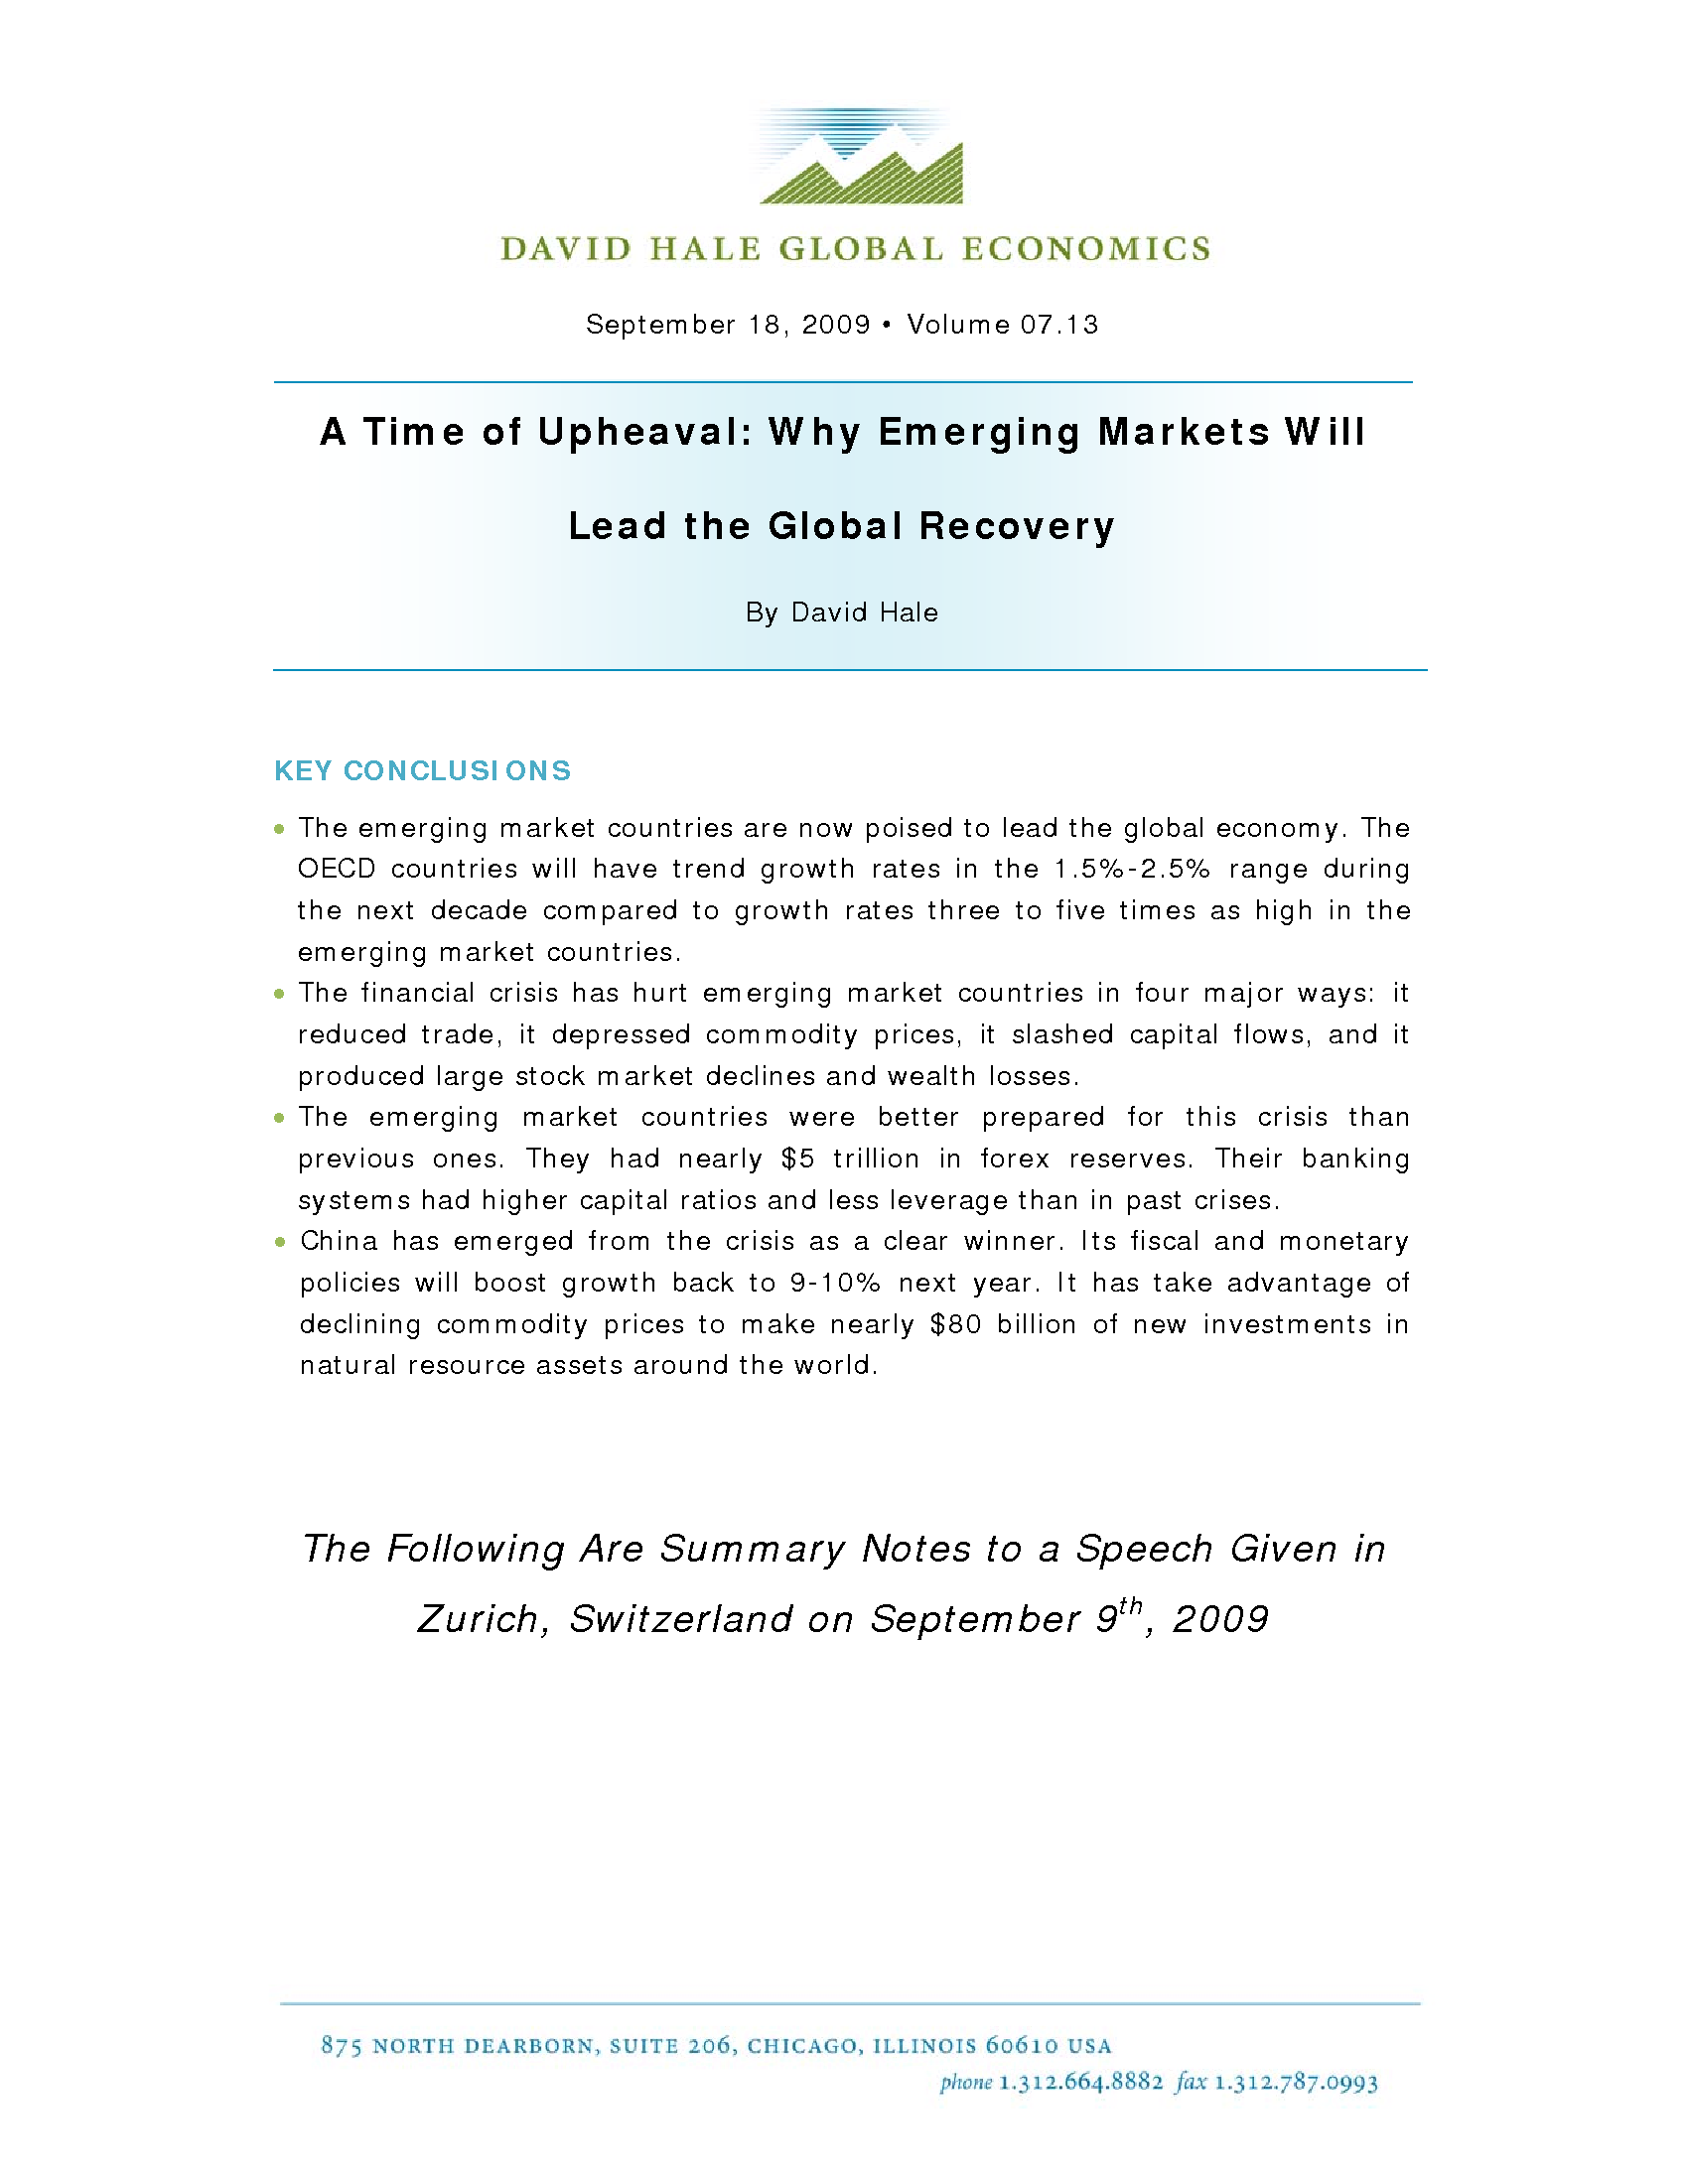 A Time of Upheaval-Why Emerging Markets Will Lead the Global Recovery.pdf- Thumb